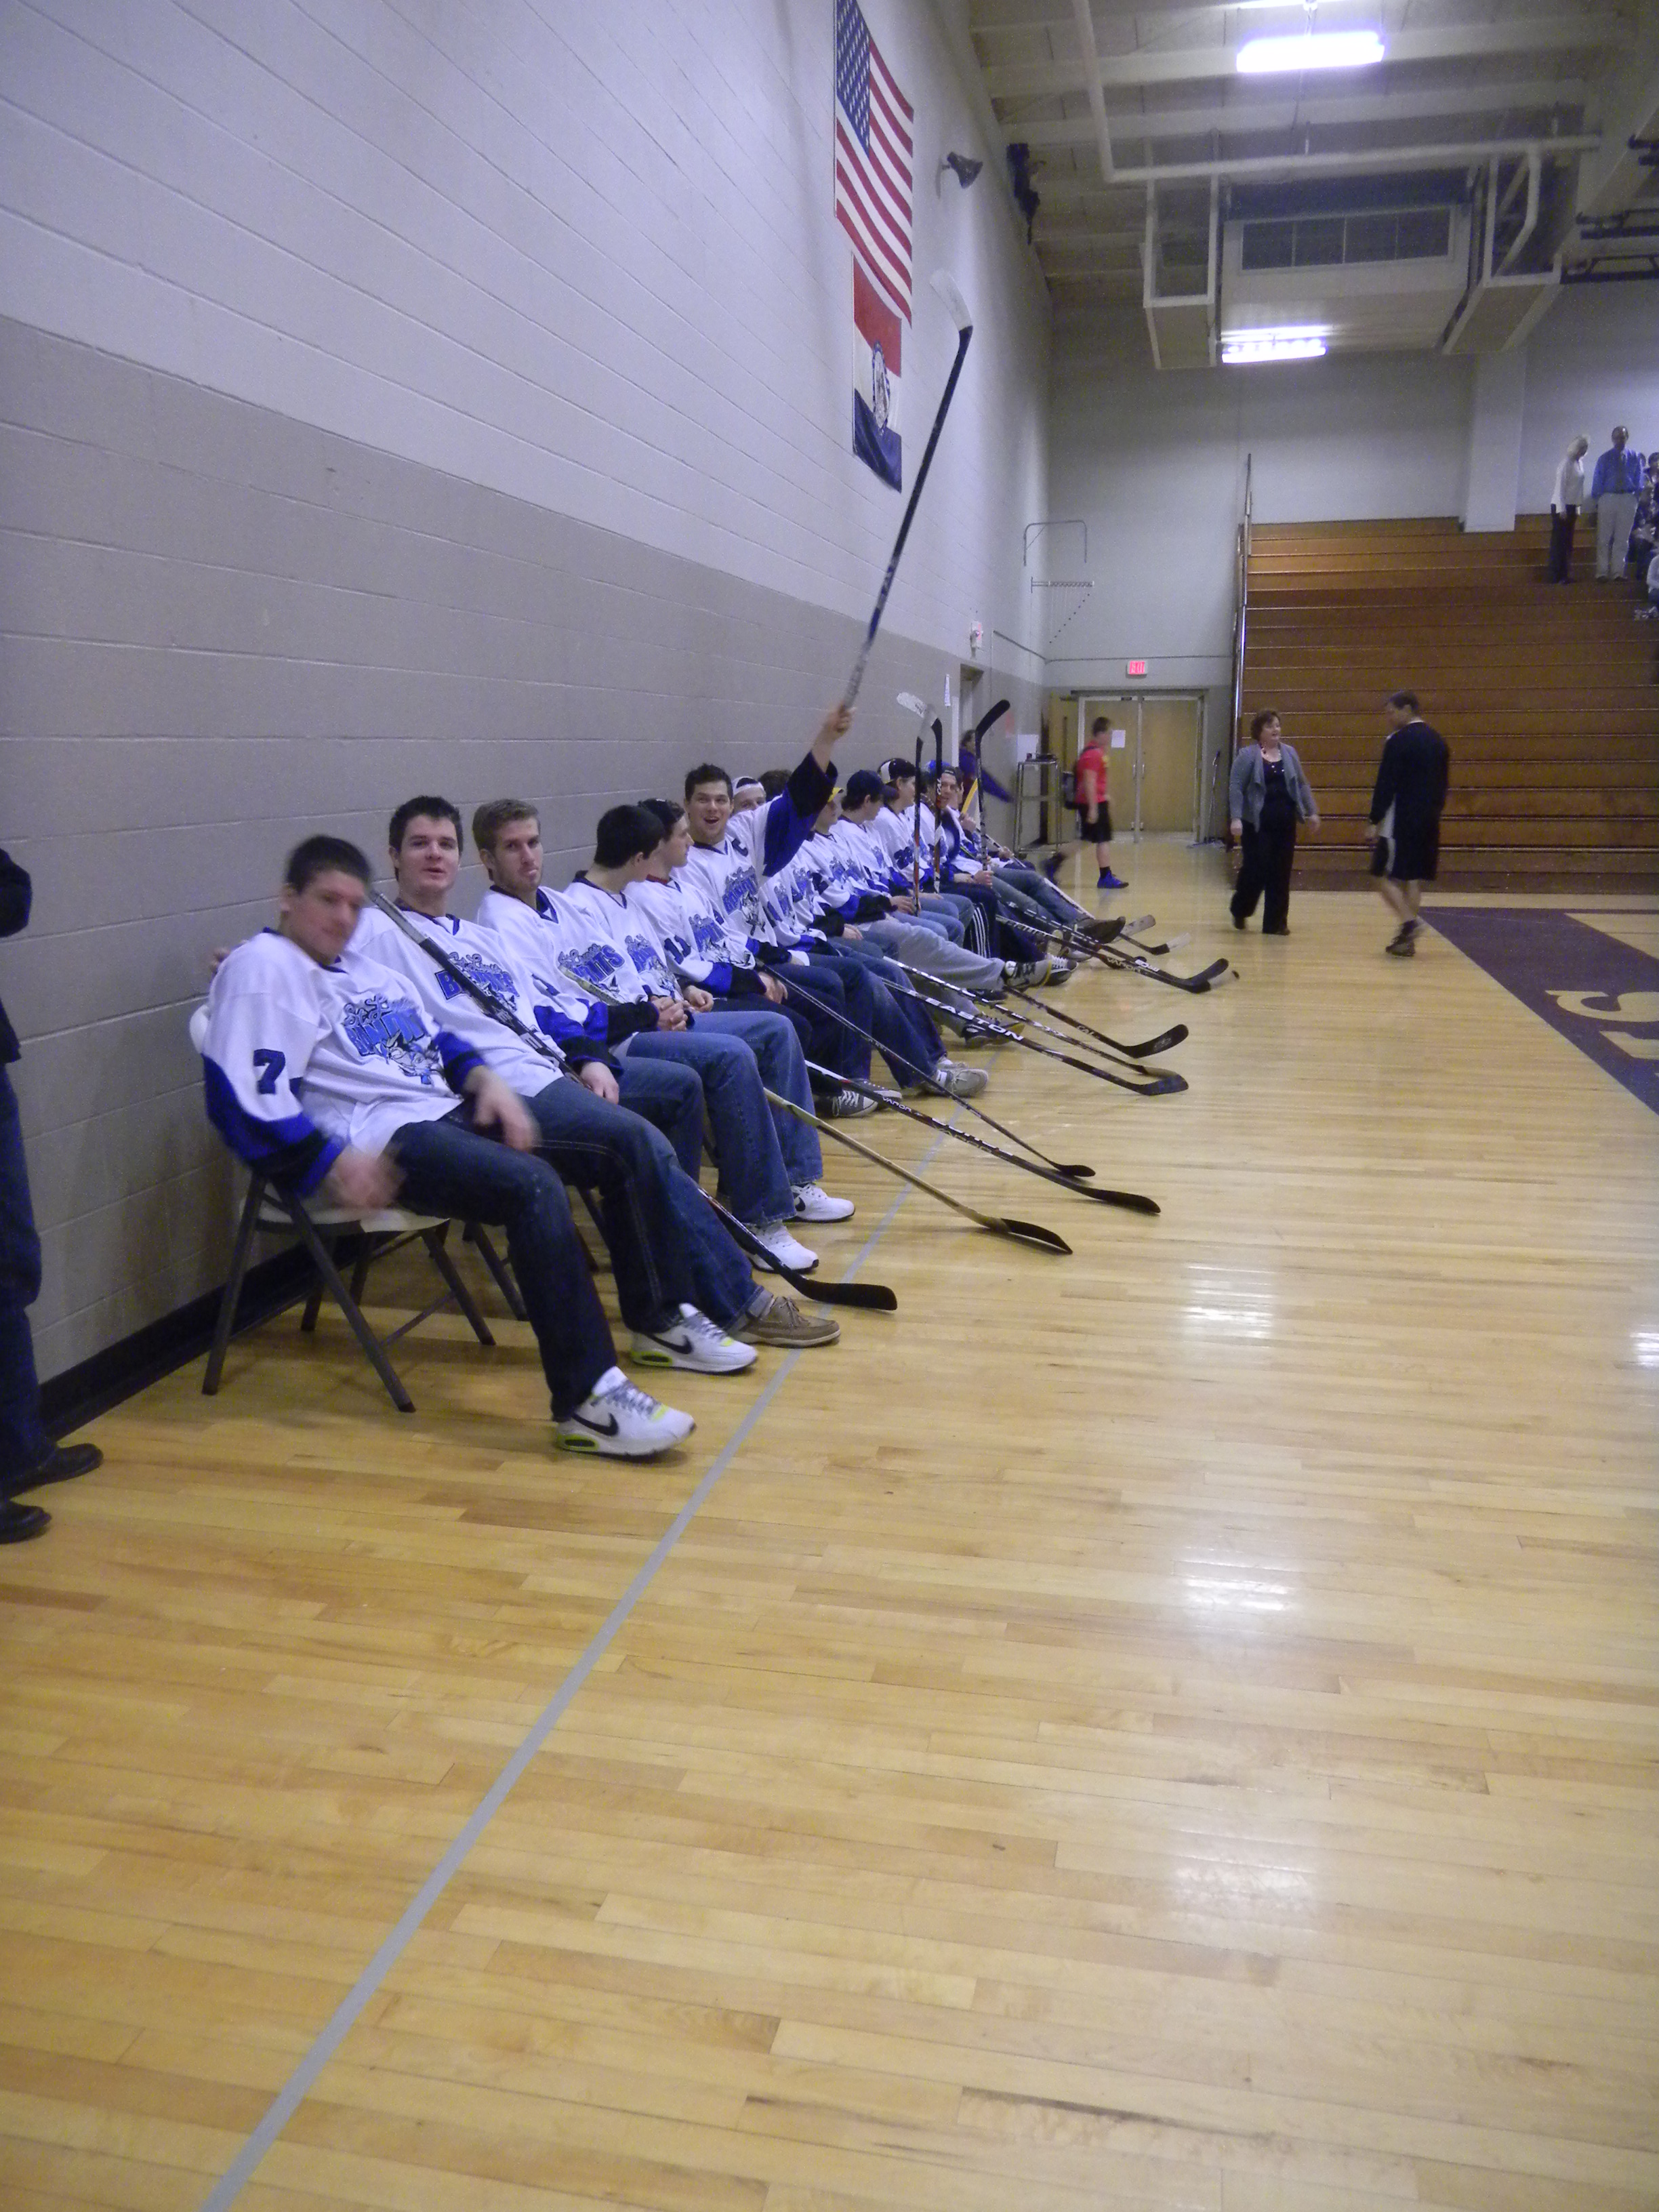 St. Louis Bandits visit to Troy Middle School